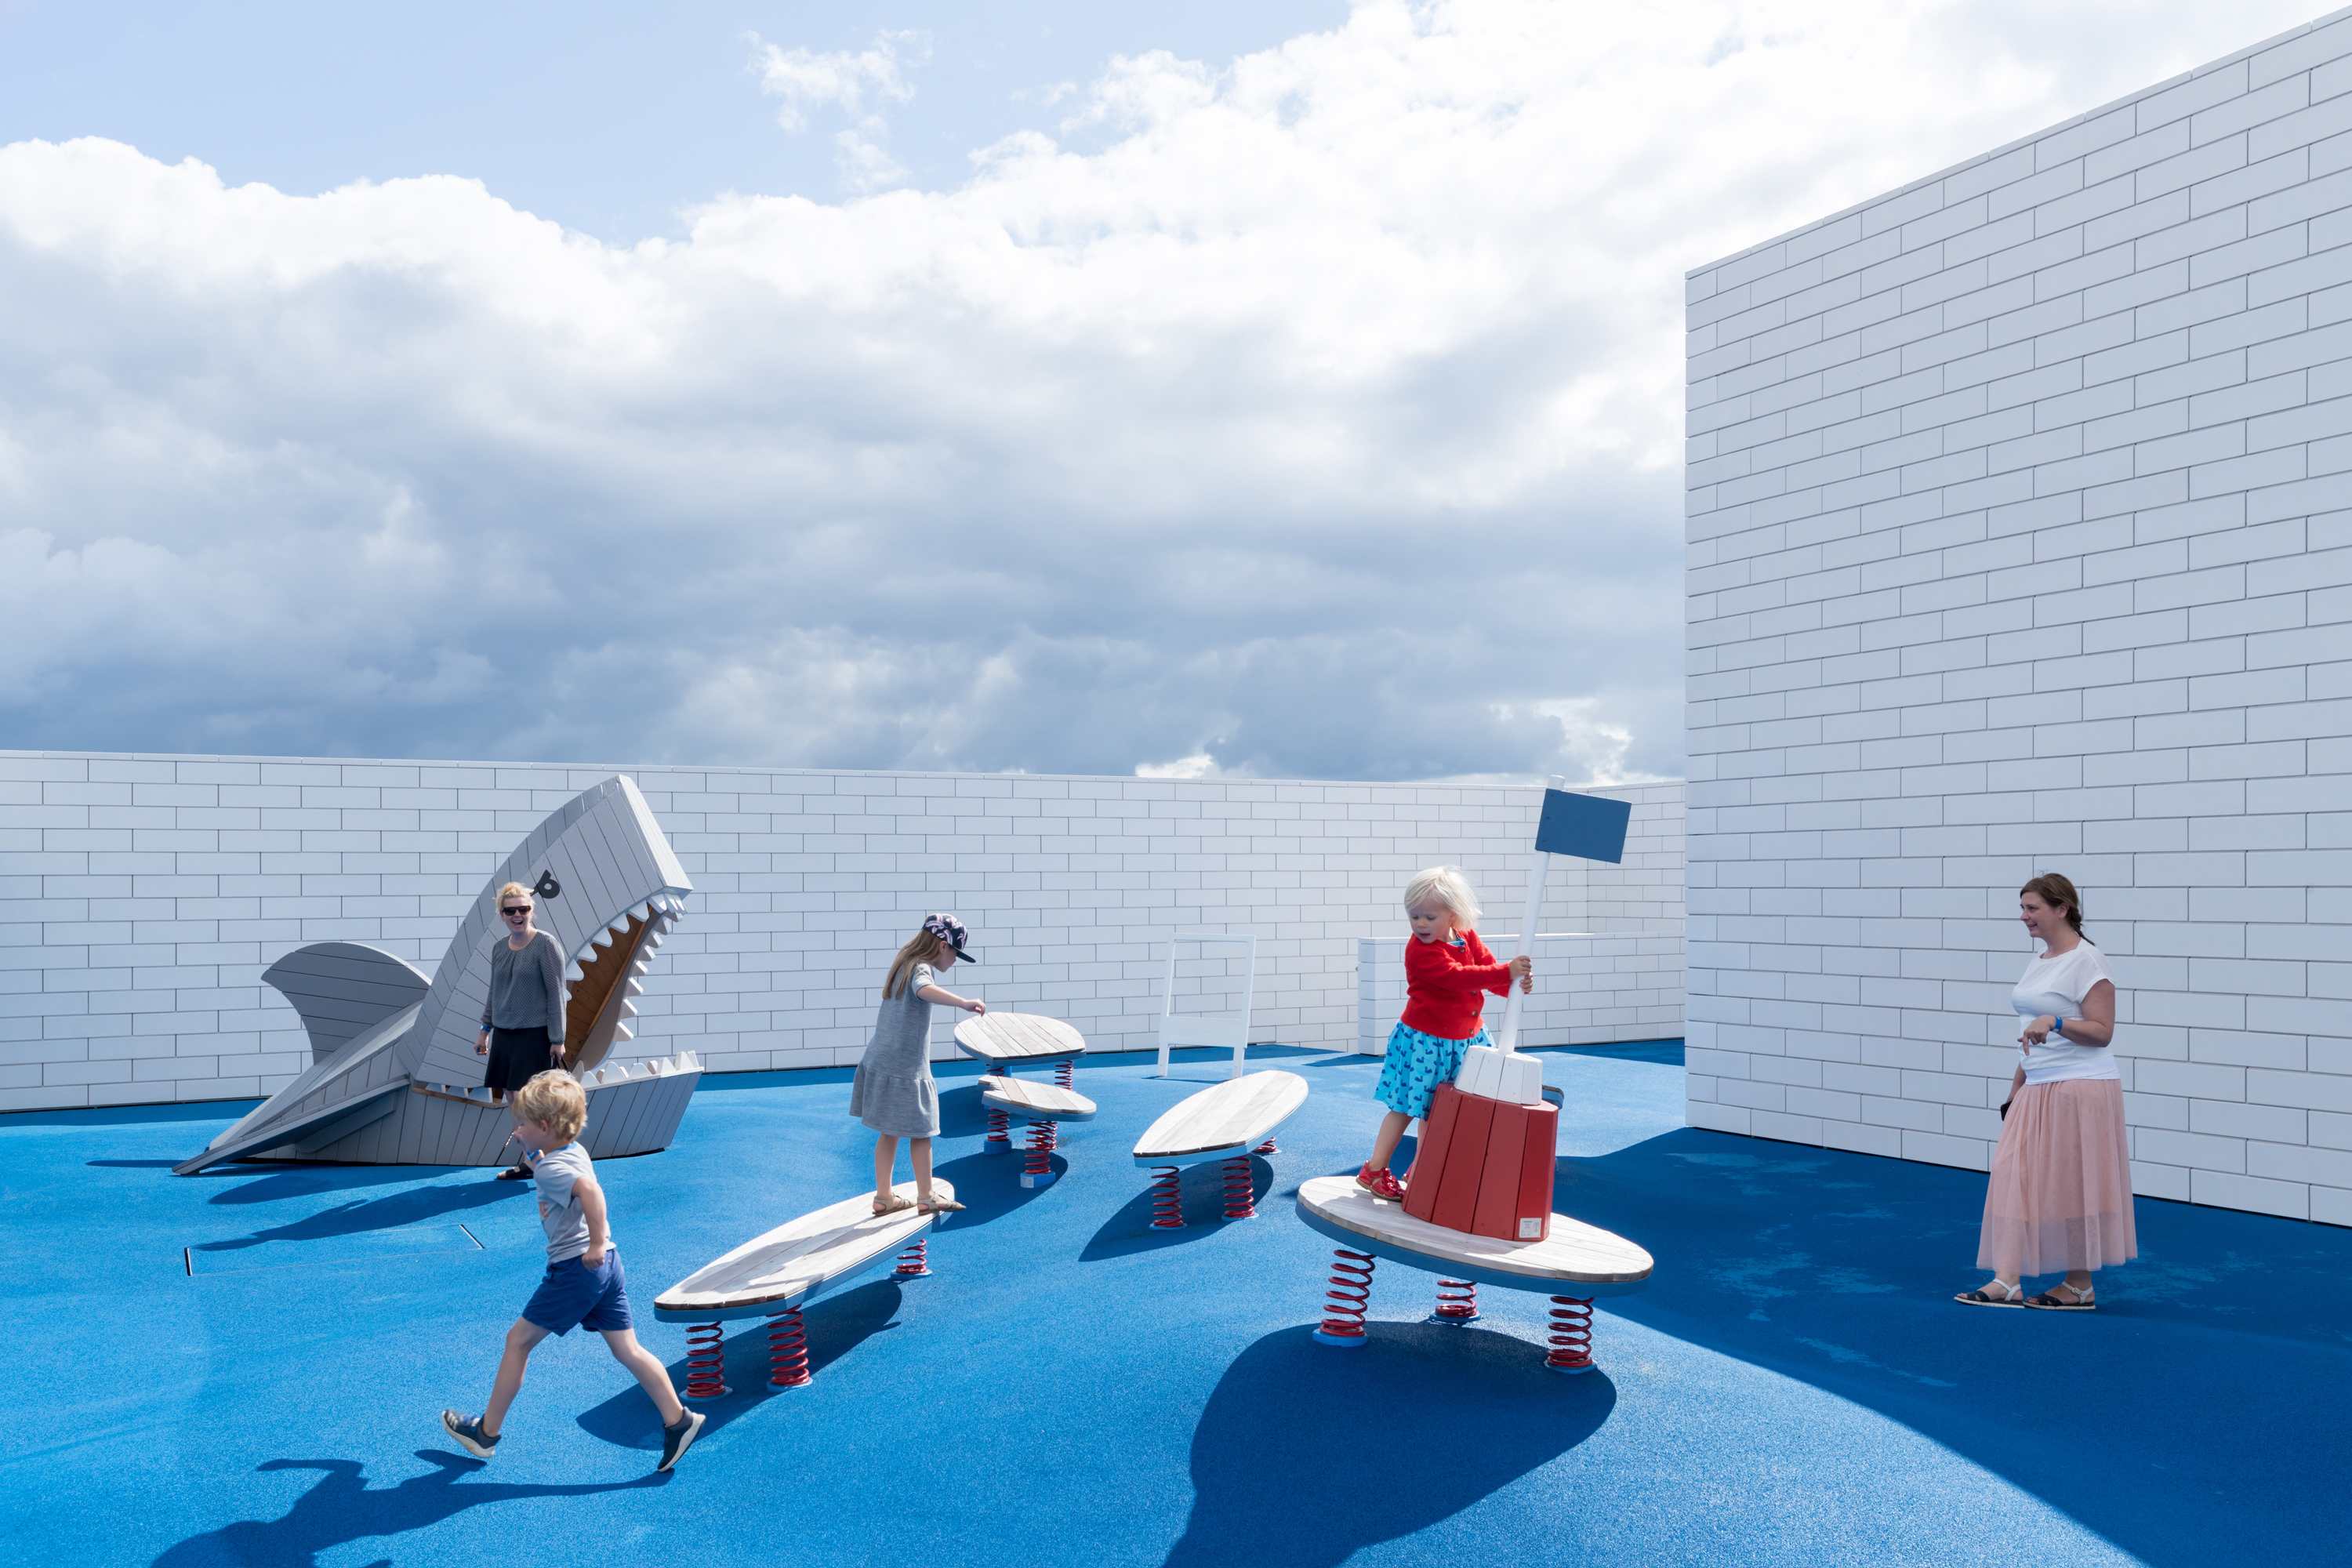 PURSUE PLAY - LEGO HOUSE BY BIG ARCHITECTS ©Heimtextil trend book